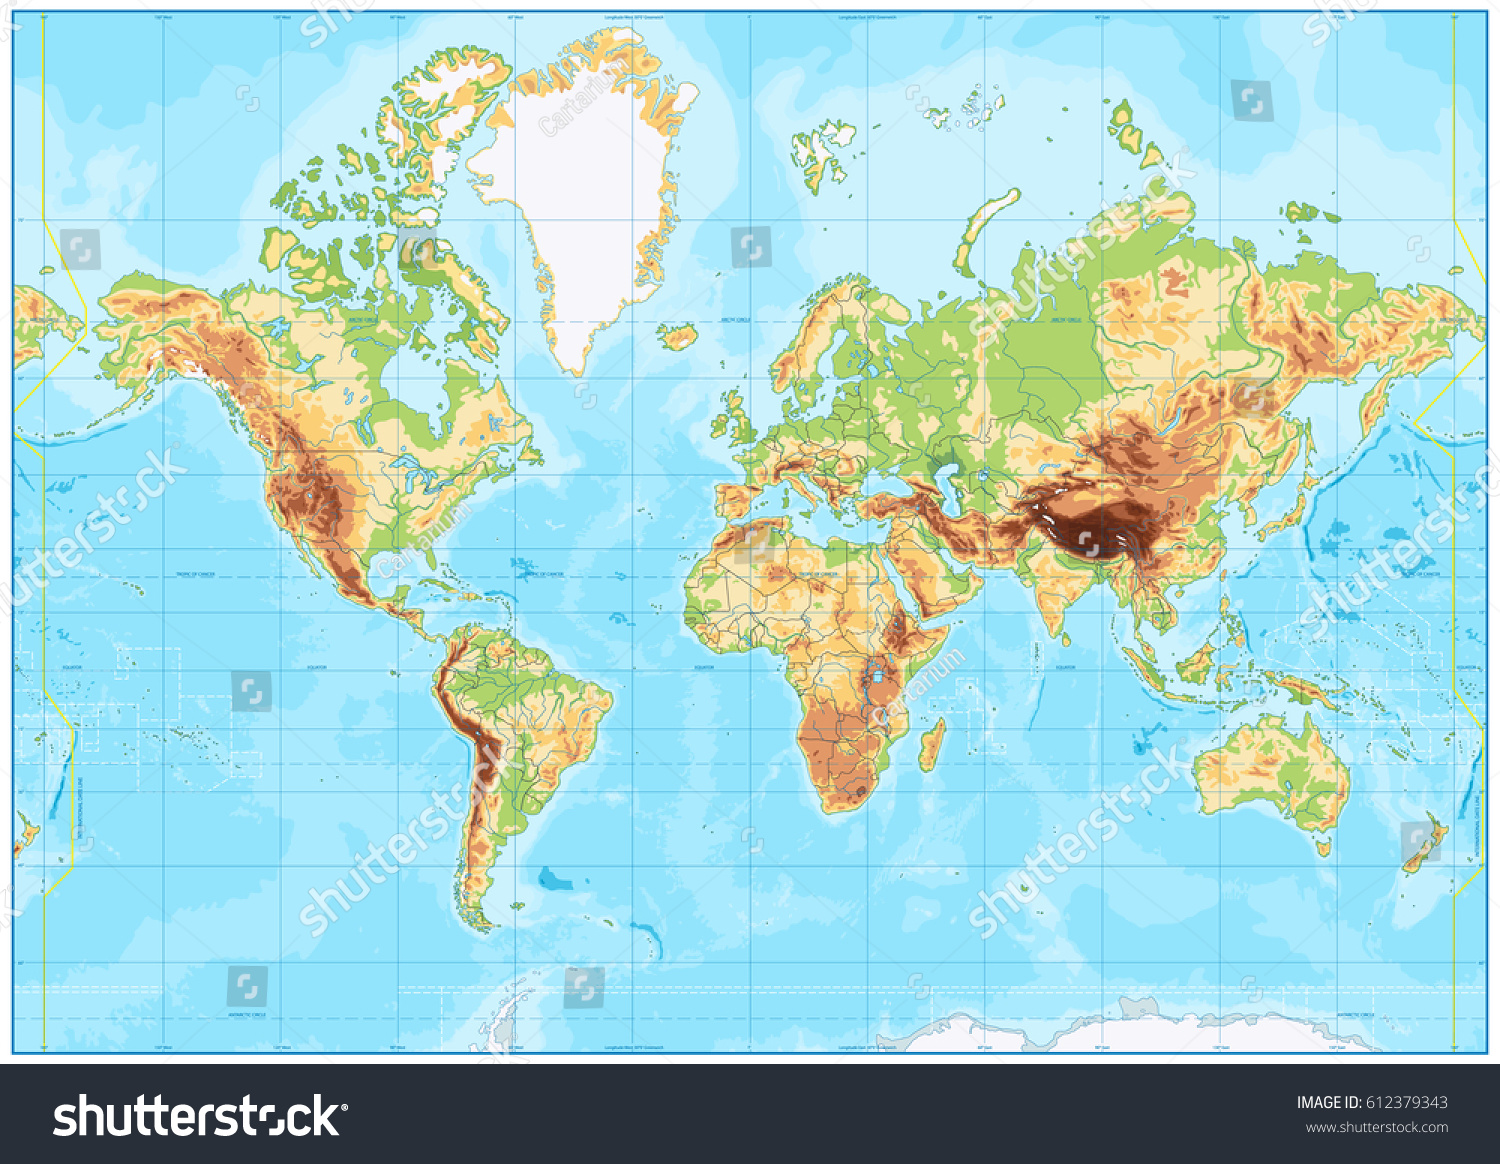 Blank physical world map bathymetry vector vectores en stock blank physical world map and bathymetry vector illustration gumiabroncs Image collections